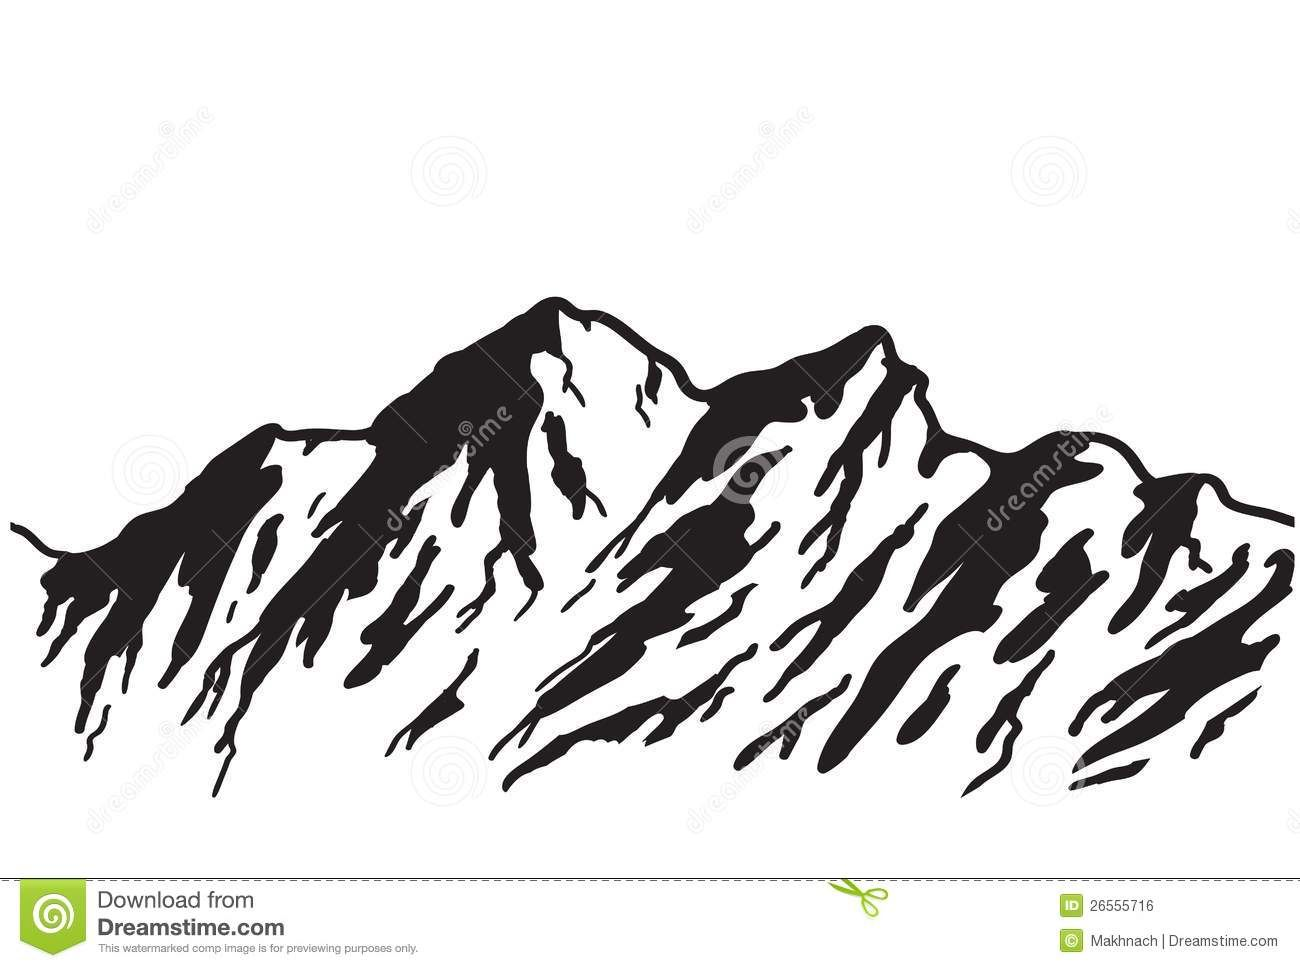 mountain outline drawings related keywords suggestions mountain rh pinterest com free mountain vector graphics free mountain vector images